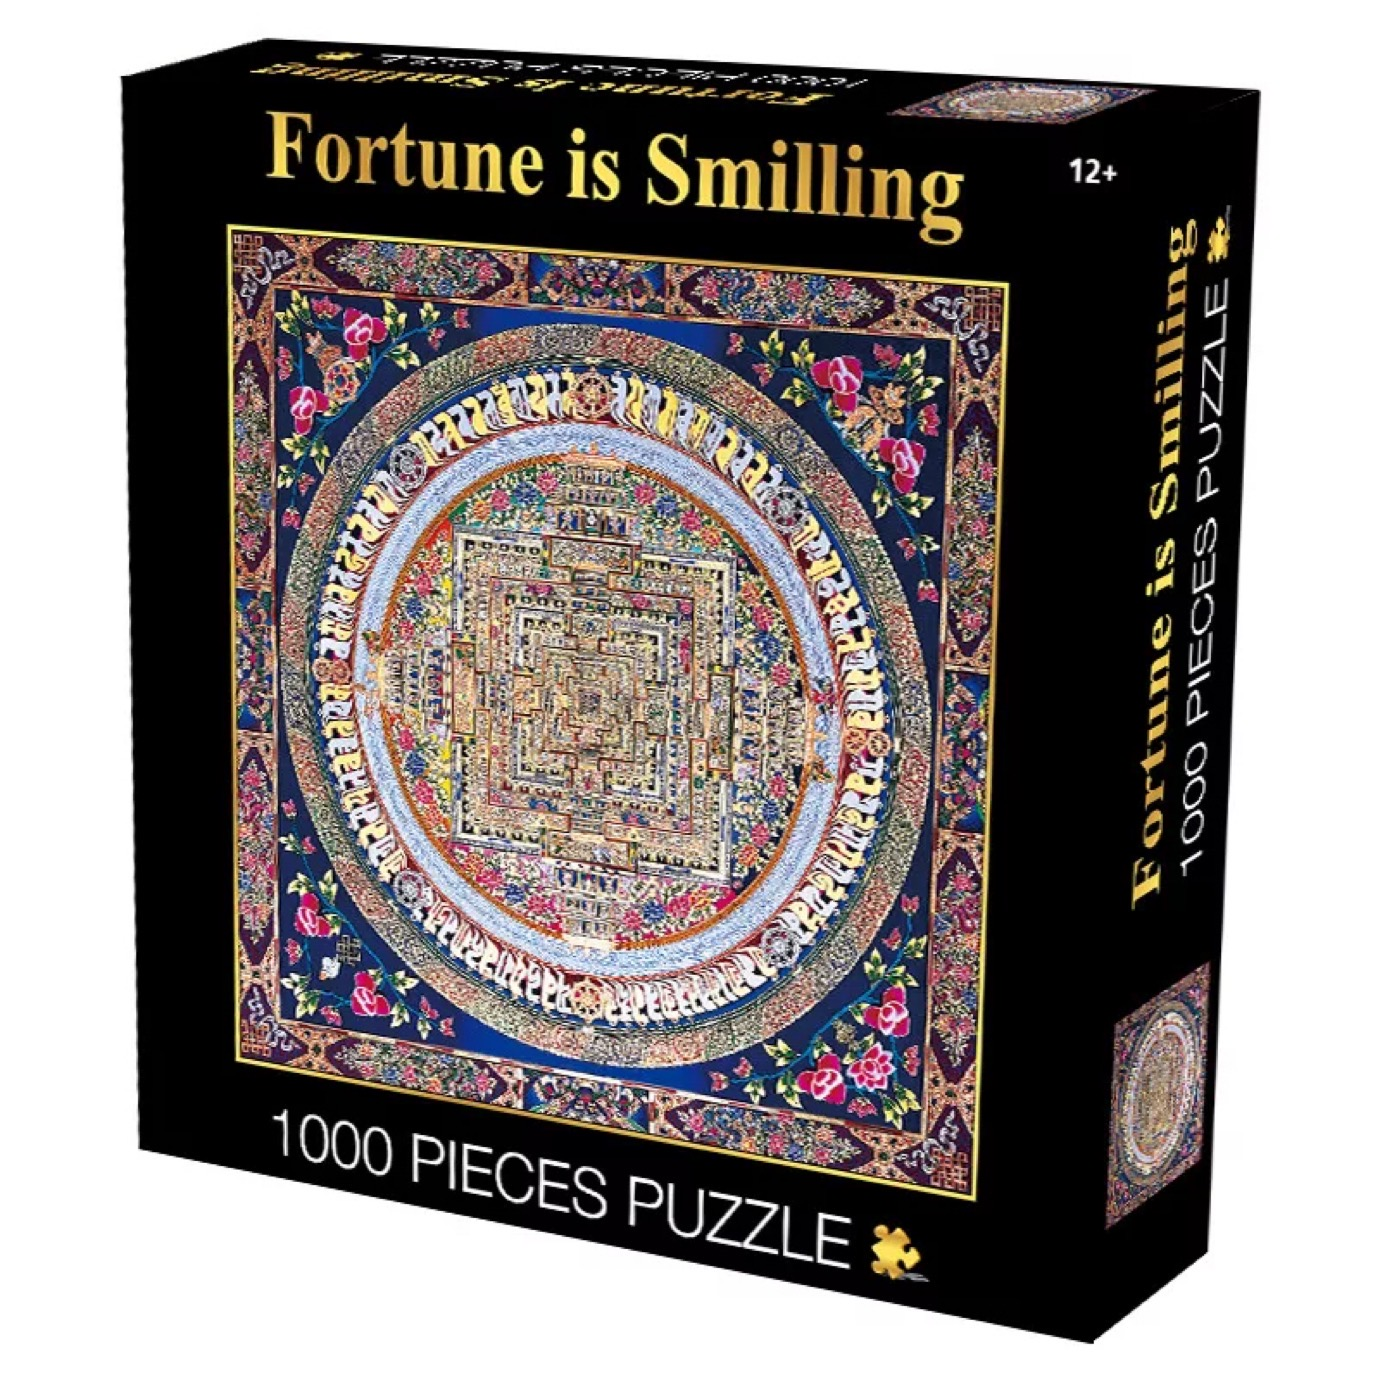 2D Jigsaw Puzzle Fortune is Smiling 1000pieces Puzzle